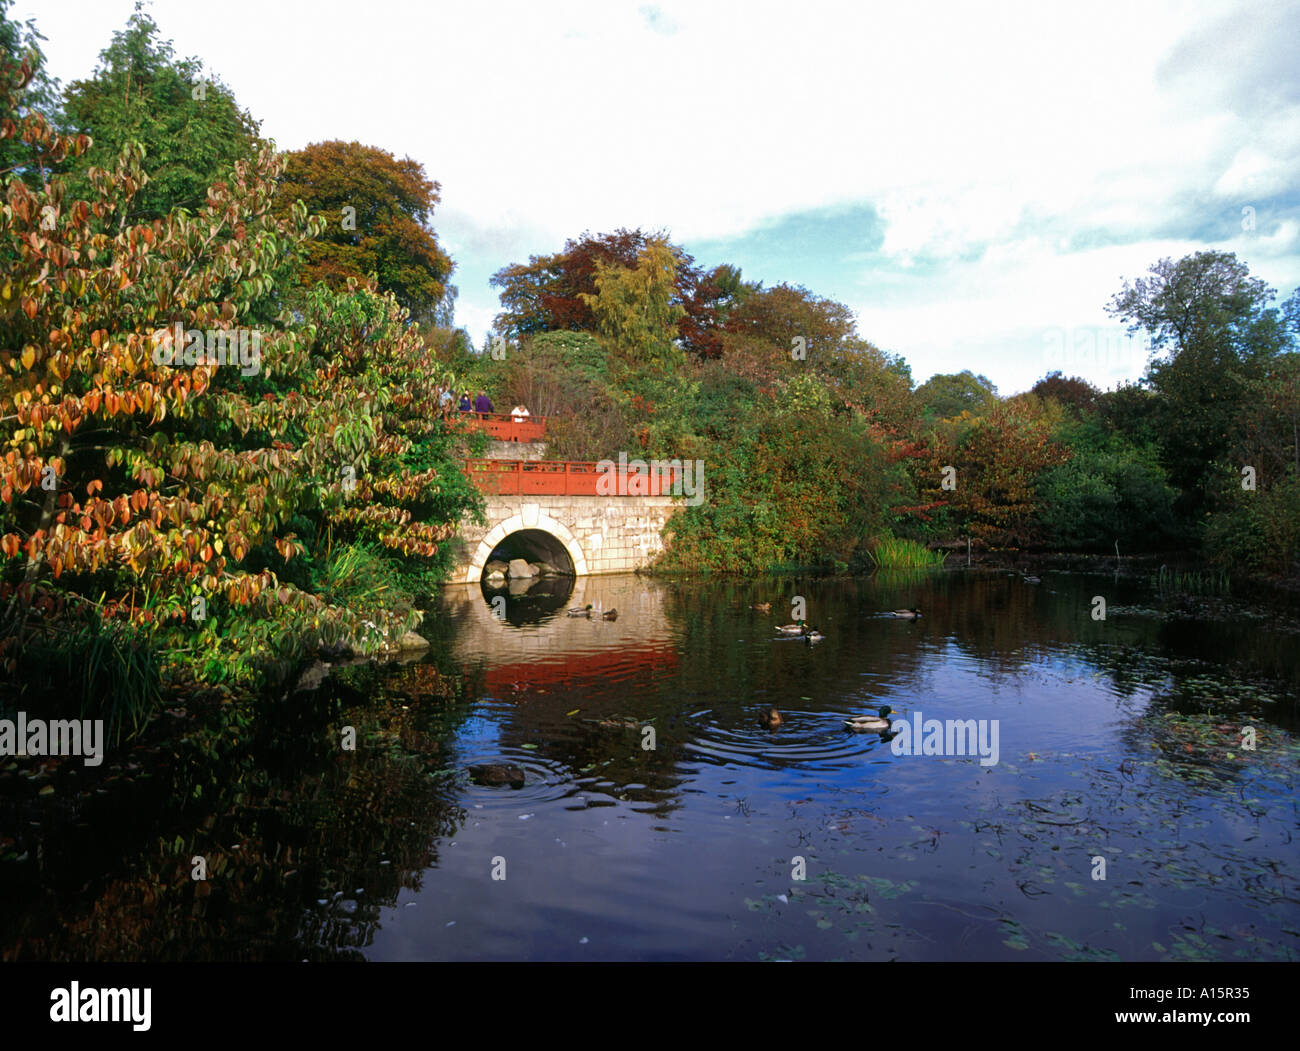 dh ROYAL BOTANIC GARDEN EDINBURGH Chinese garden bridge people child ...